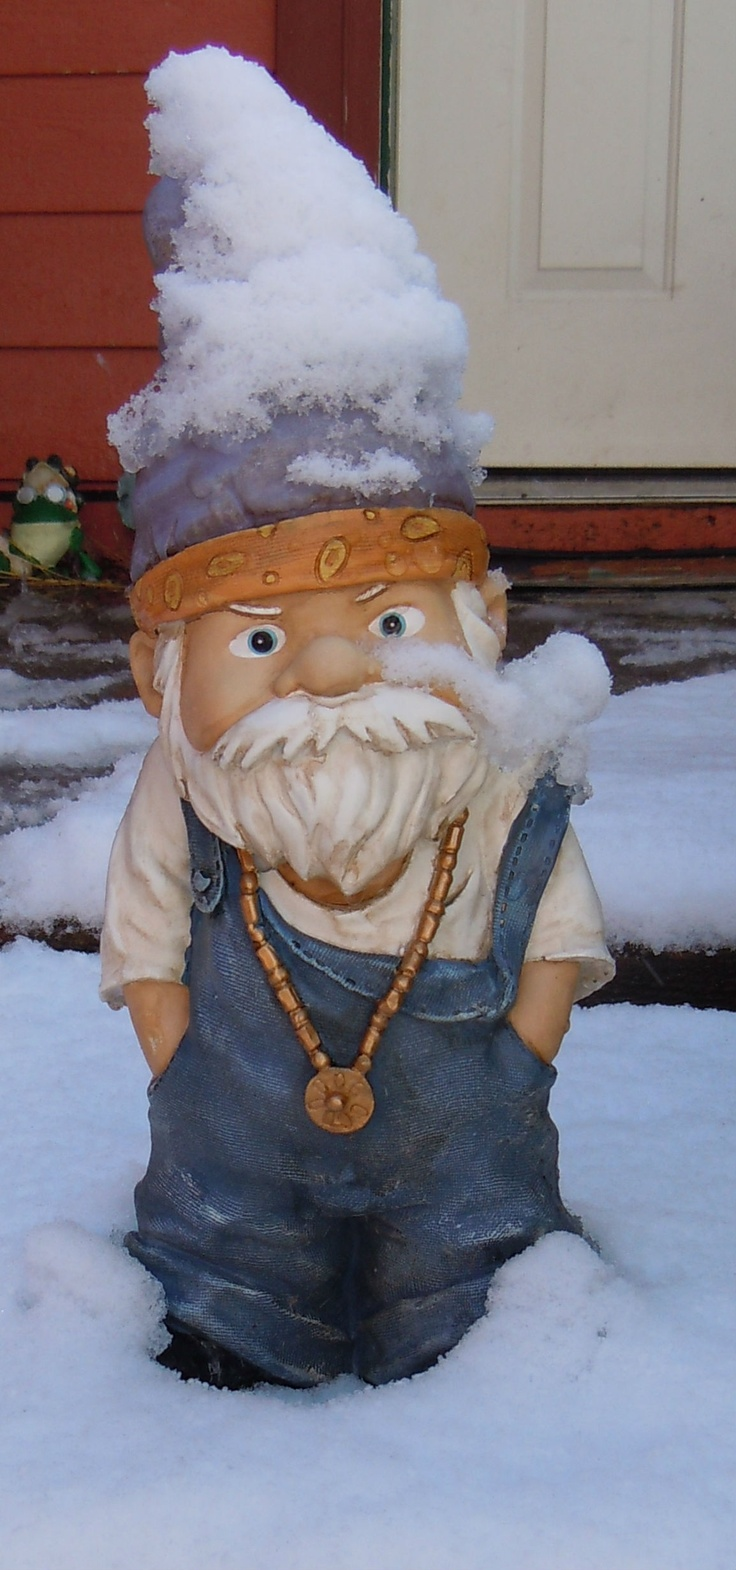 Gnome In Garden: 164 Best Gnome Memes: Funny Gnomes Images On Pinterest